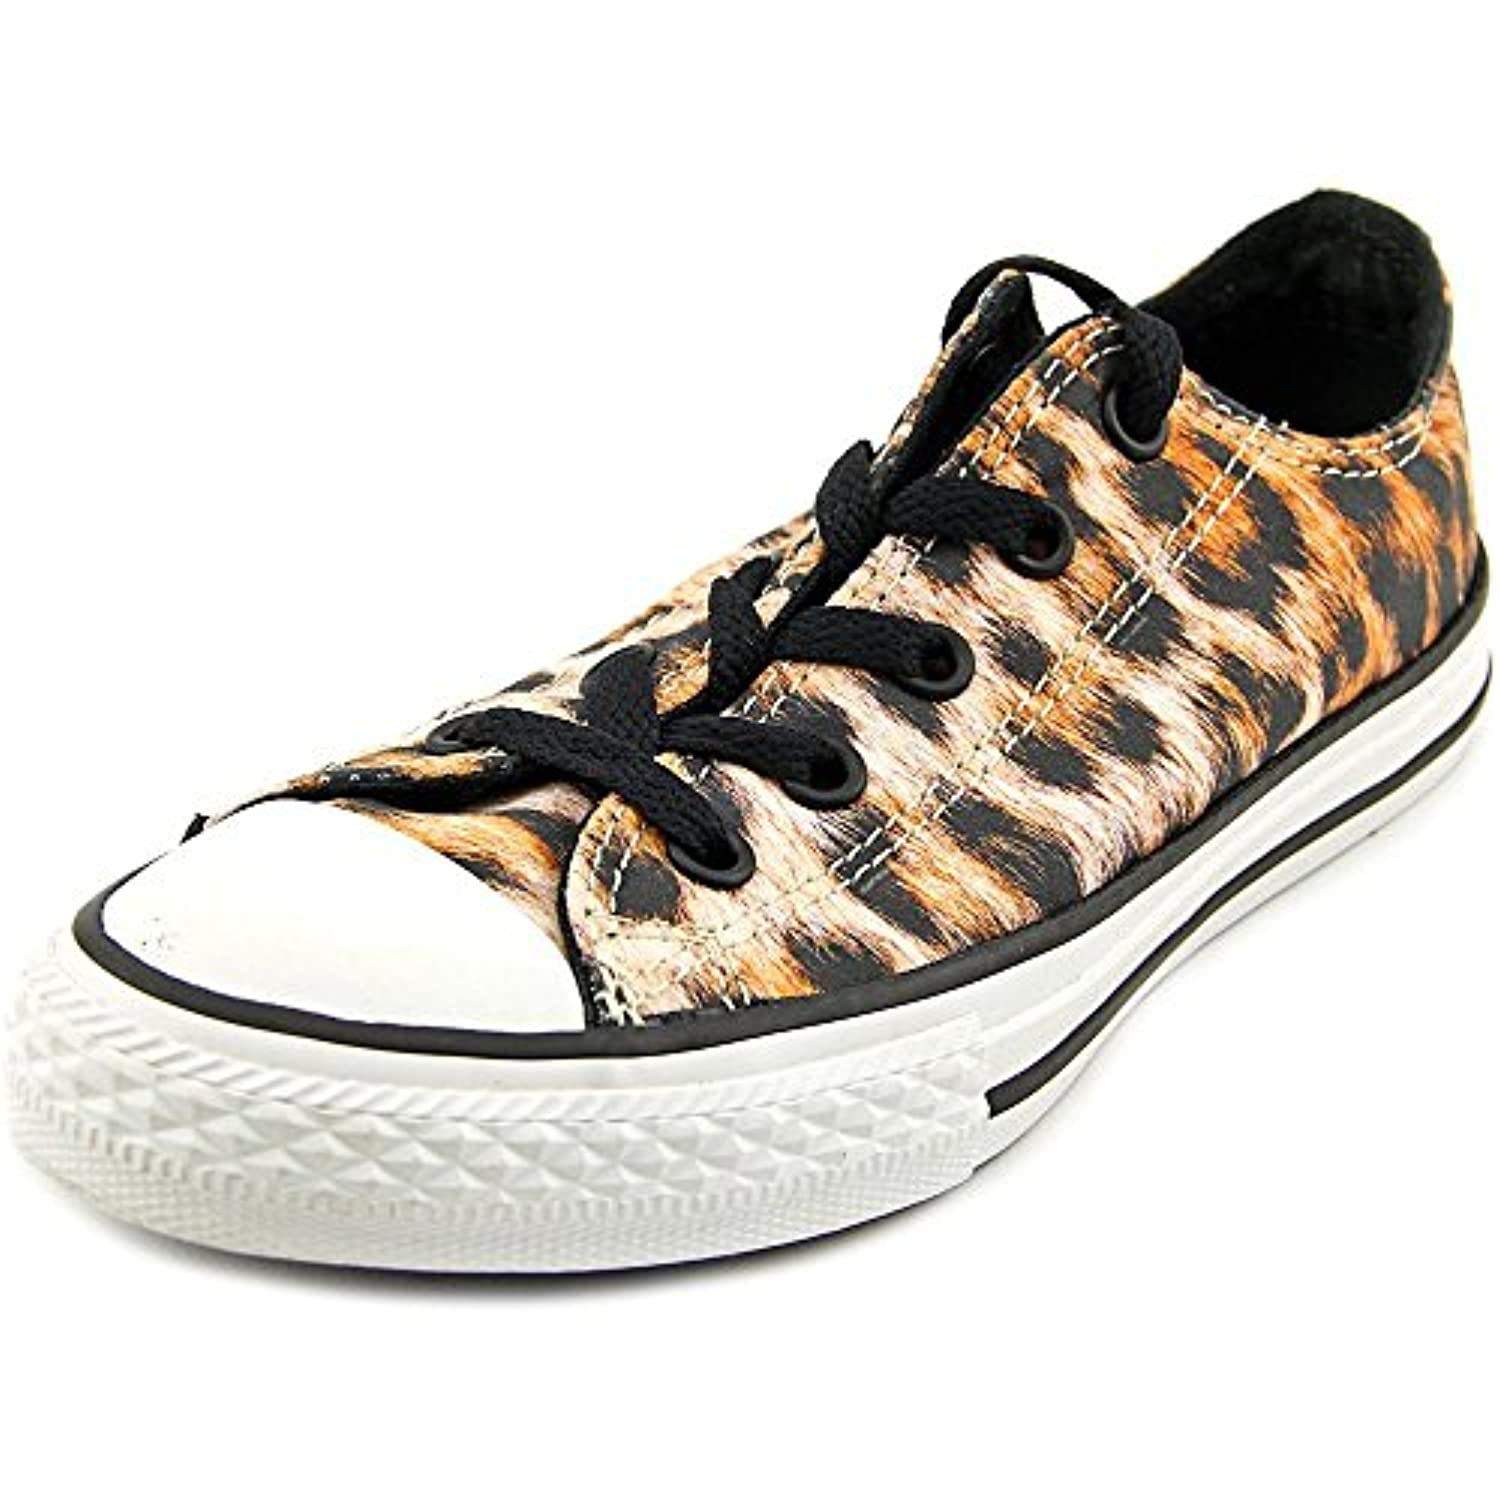 Converse Ct Ox Mallow Youth US 1 Black Athletic Sneakers